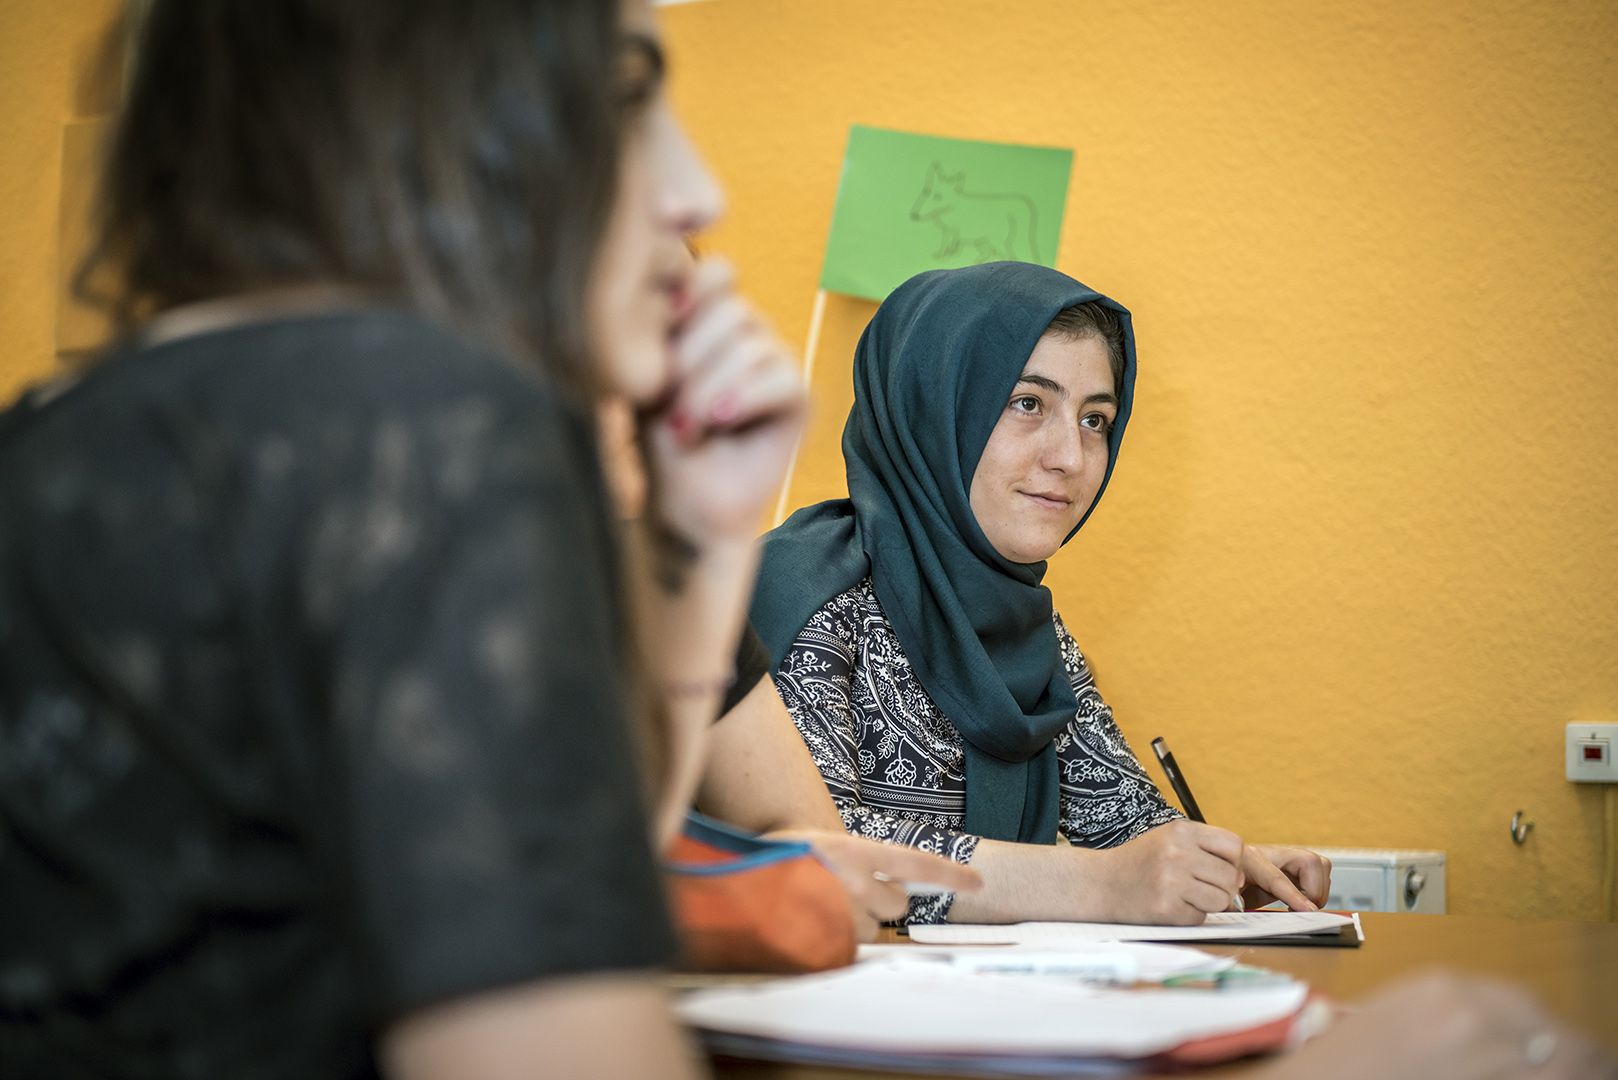 """Samira Marwi, age 15, from Afganistan, participant at the refugee summer school at """"lehrreich"""" in Berlin-Wilmersdorf. Samira lost both her parents at a young age. One day she wants to study medicine, but first she'll have to tackle the finer points of German grammar. Germany, Berlin, 29/08/2016"""